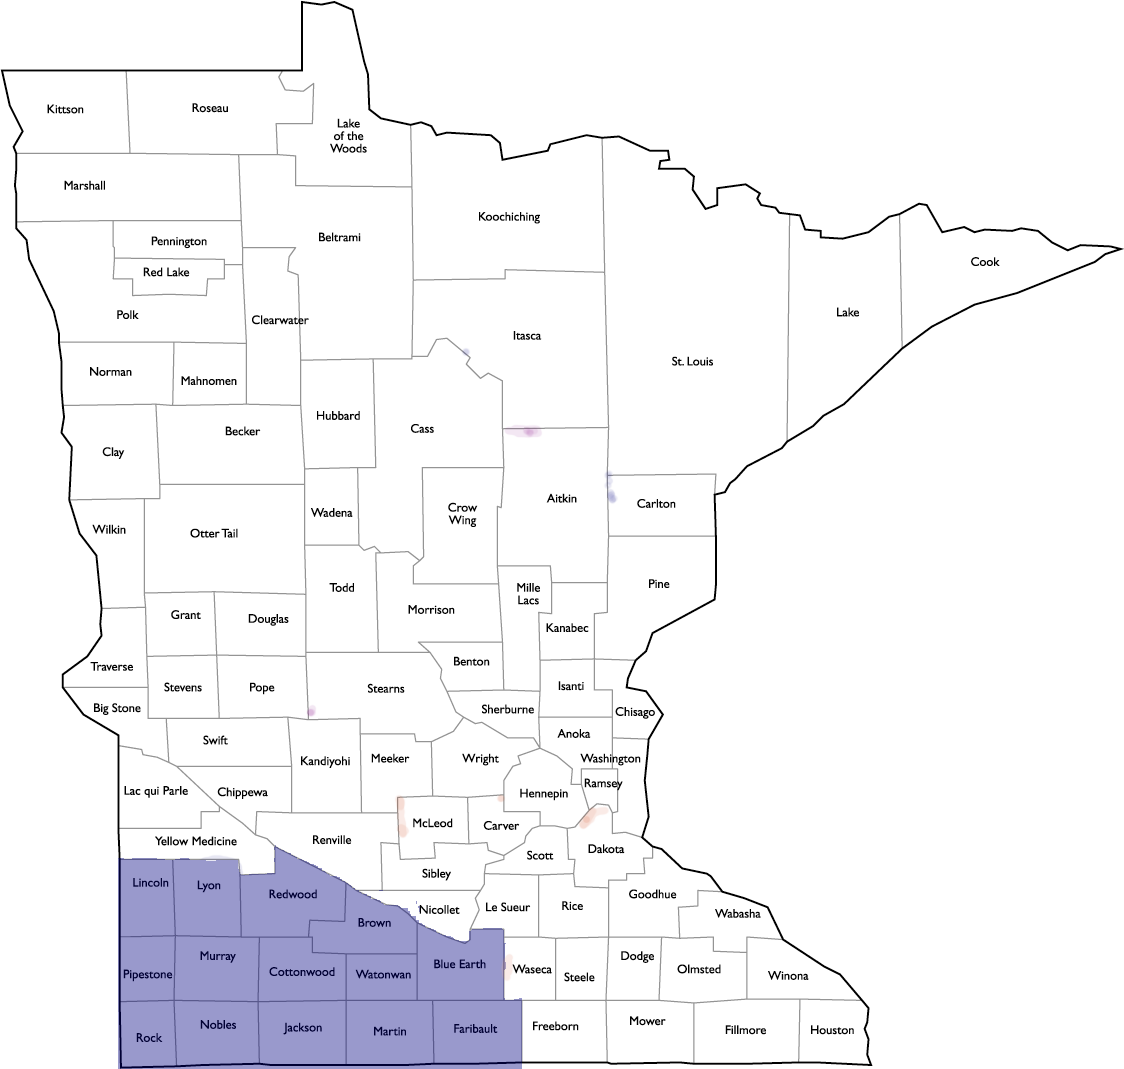 GFWC Of MN Southwest District County Map - General Federation Of Womenu0026#39;s Clubs Minnesota